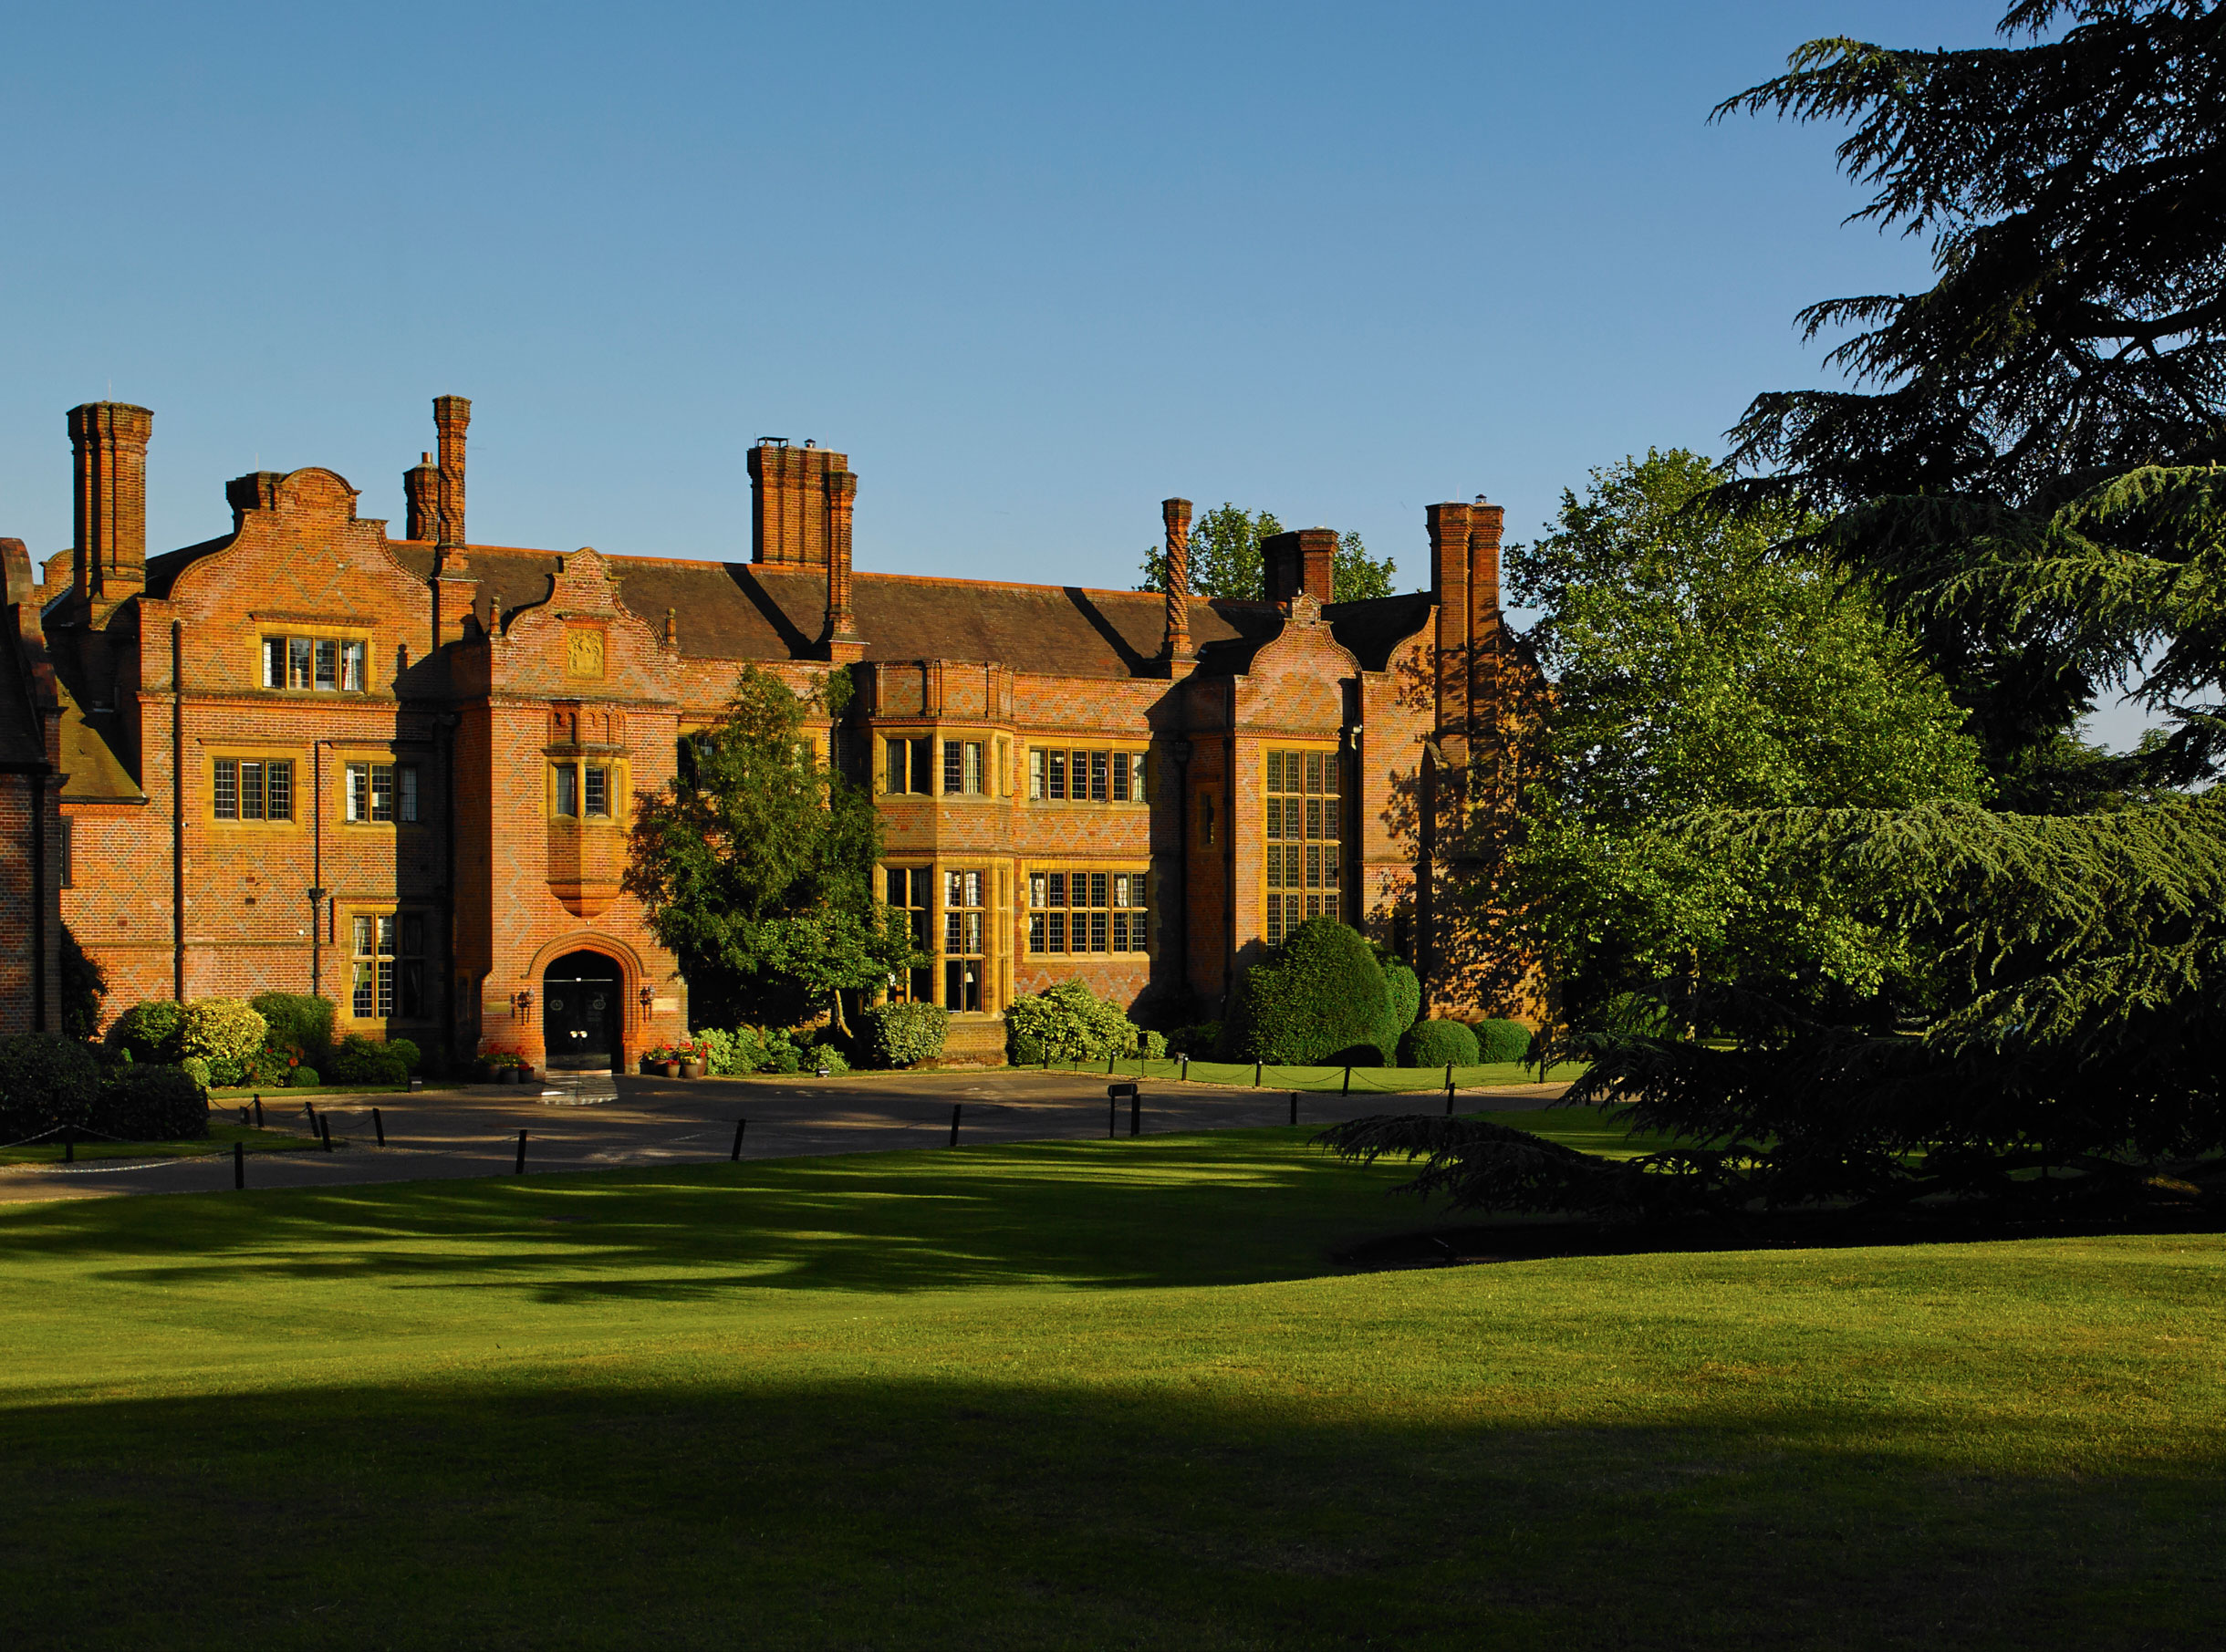 Get A Great Night's Sleep At Hanbury Manor With Duxiana Beds